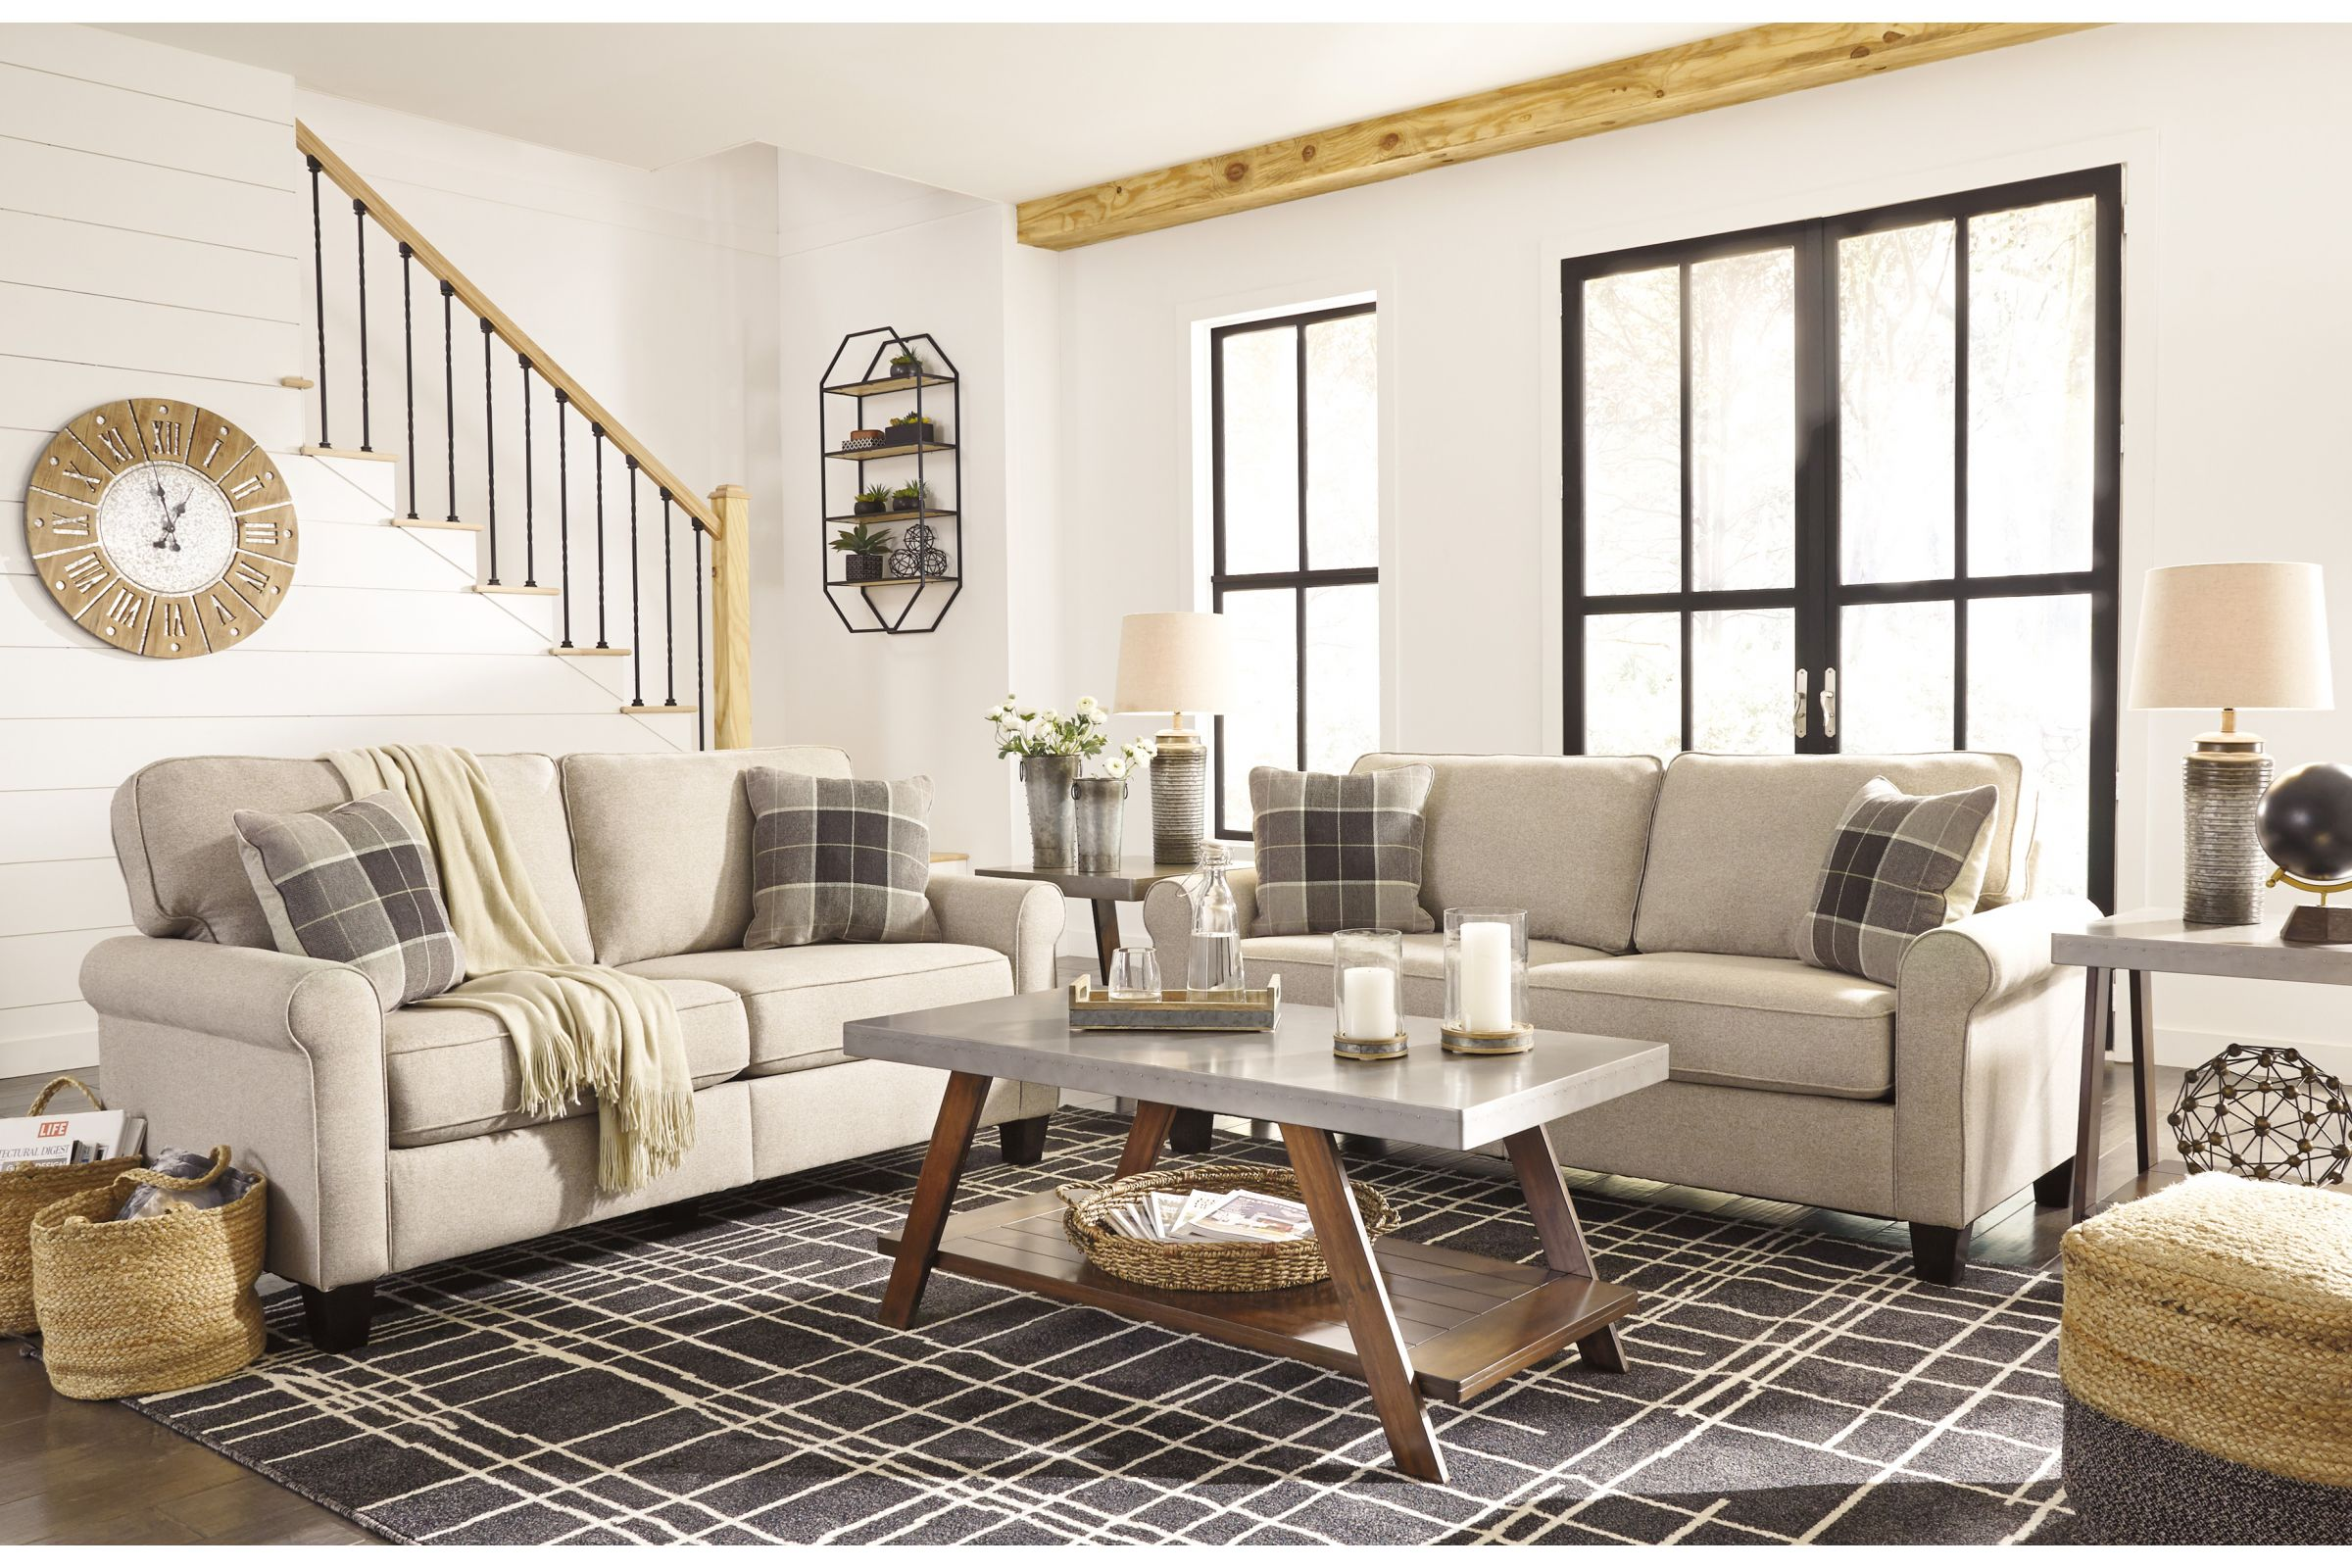 Living Room in a Box by Ashley Living Room Collection